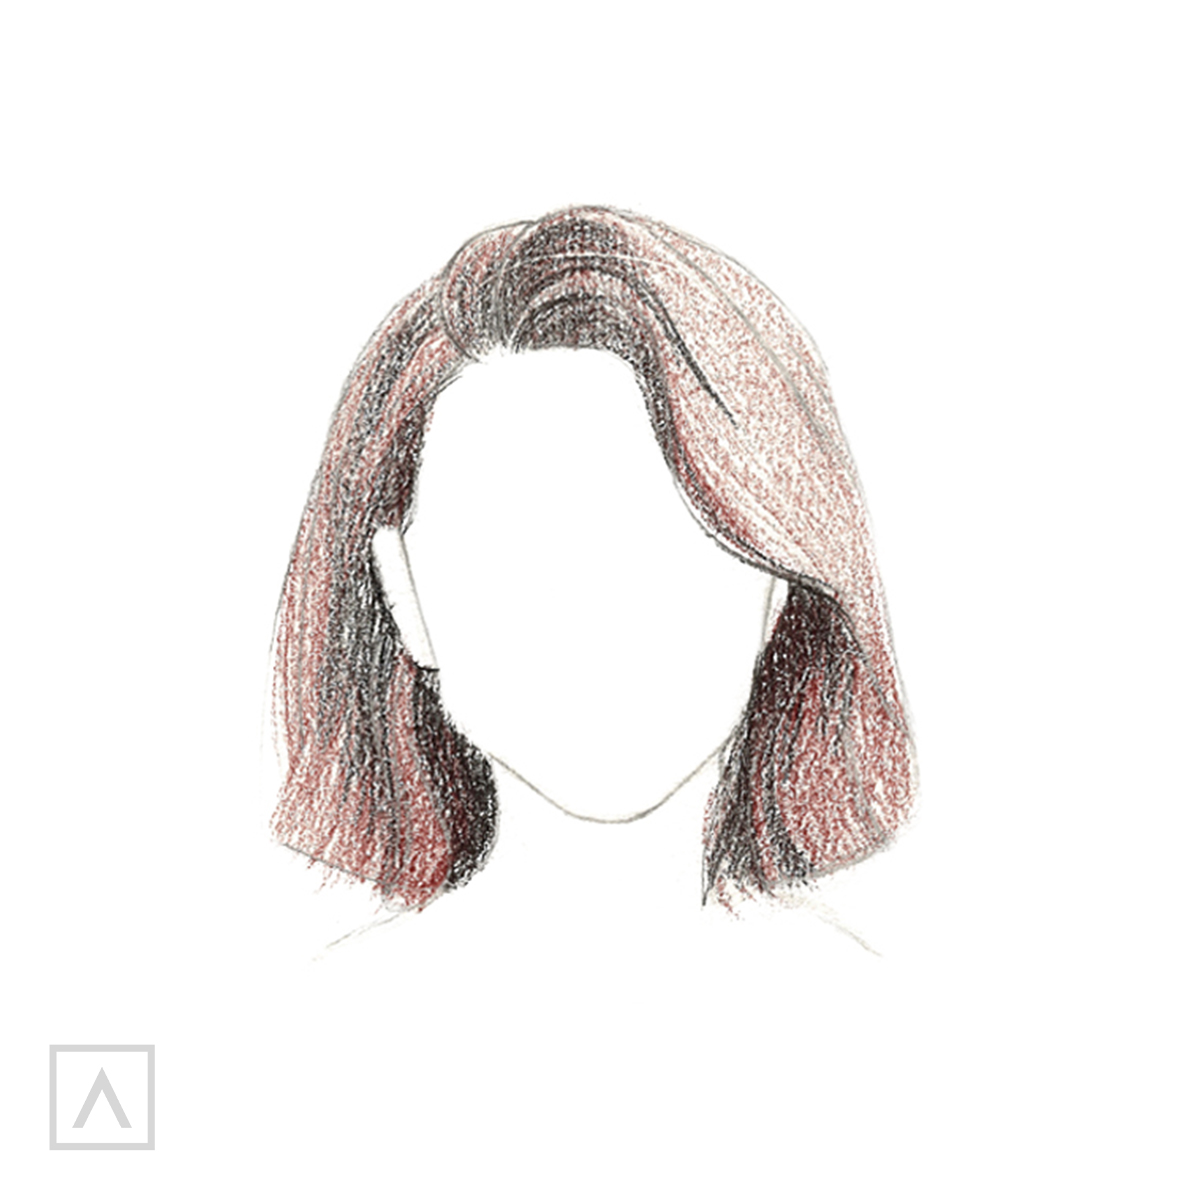 How to Draw Short Hair - Step 7